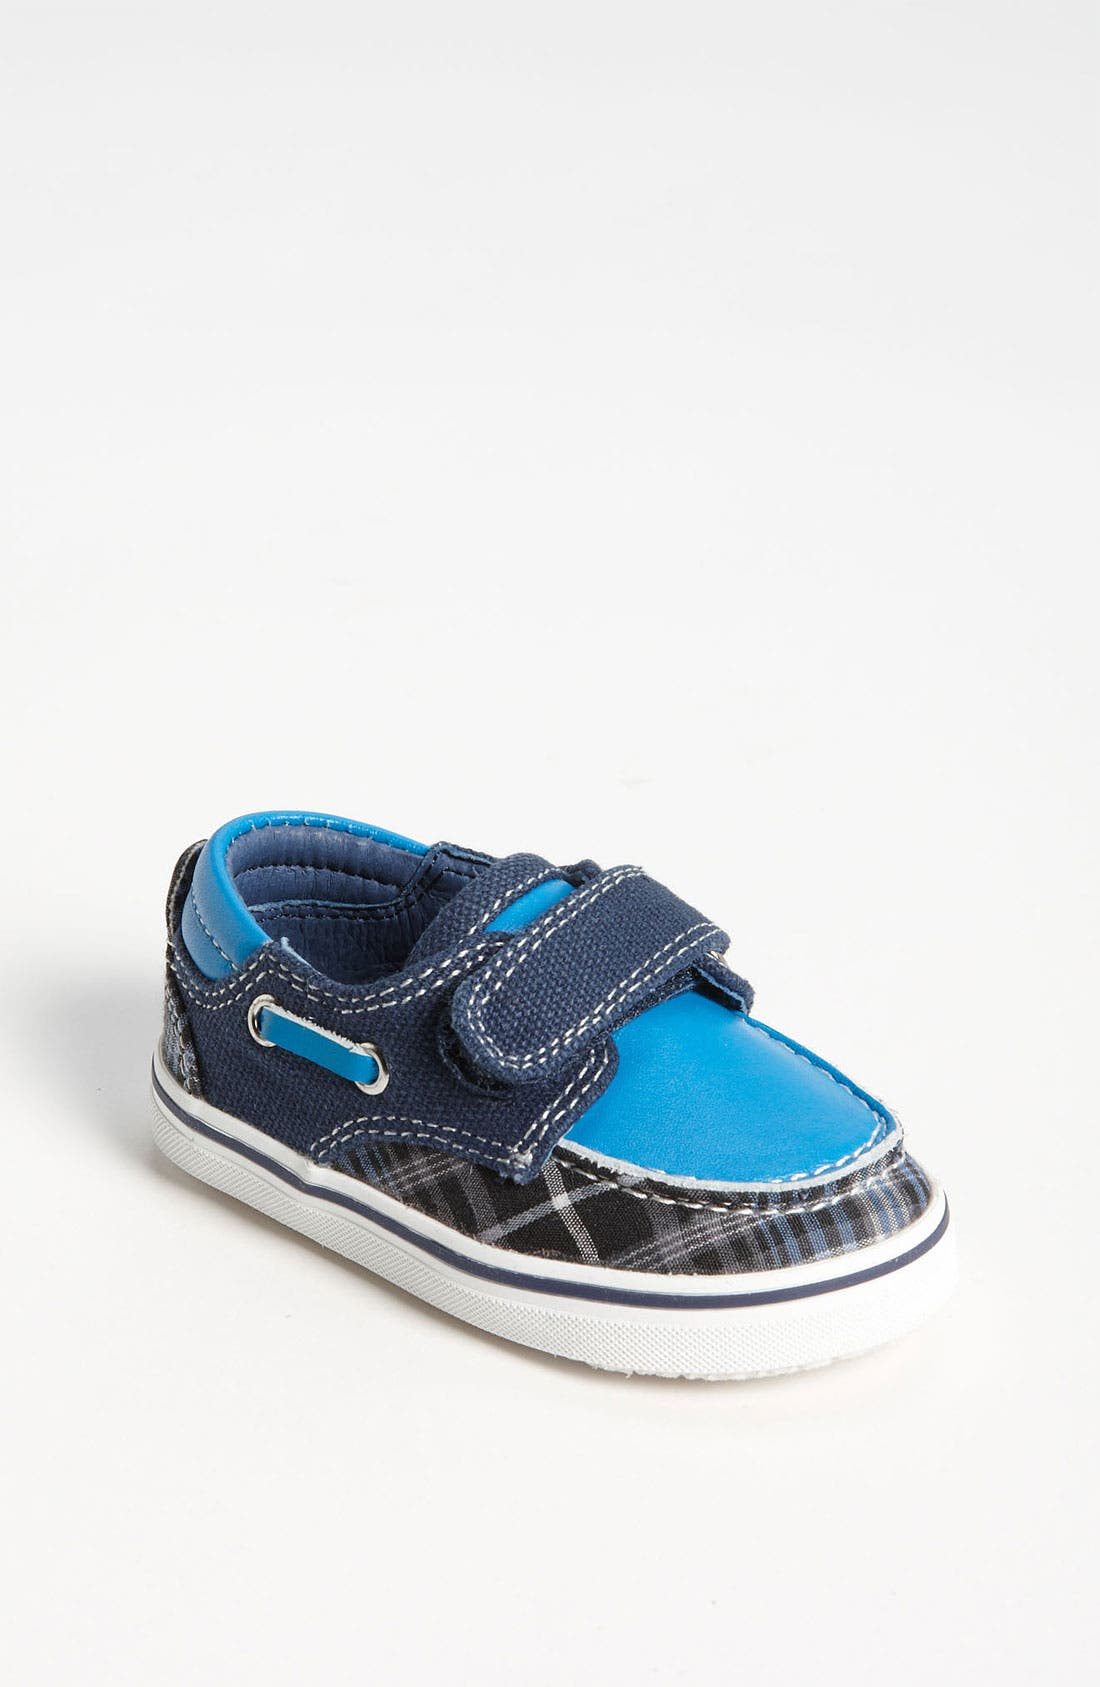 Alternate Image 1 Selected - Cole Haan 'Mini Cory' Boat Shoe (Baby)